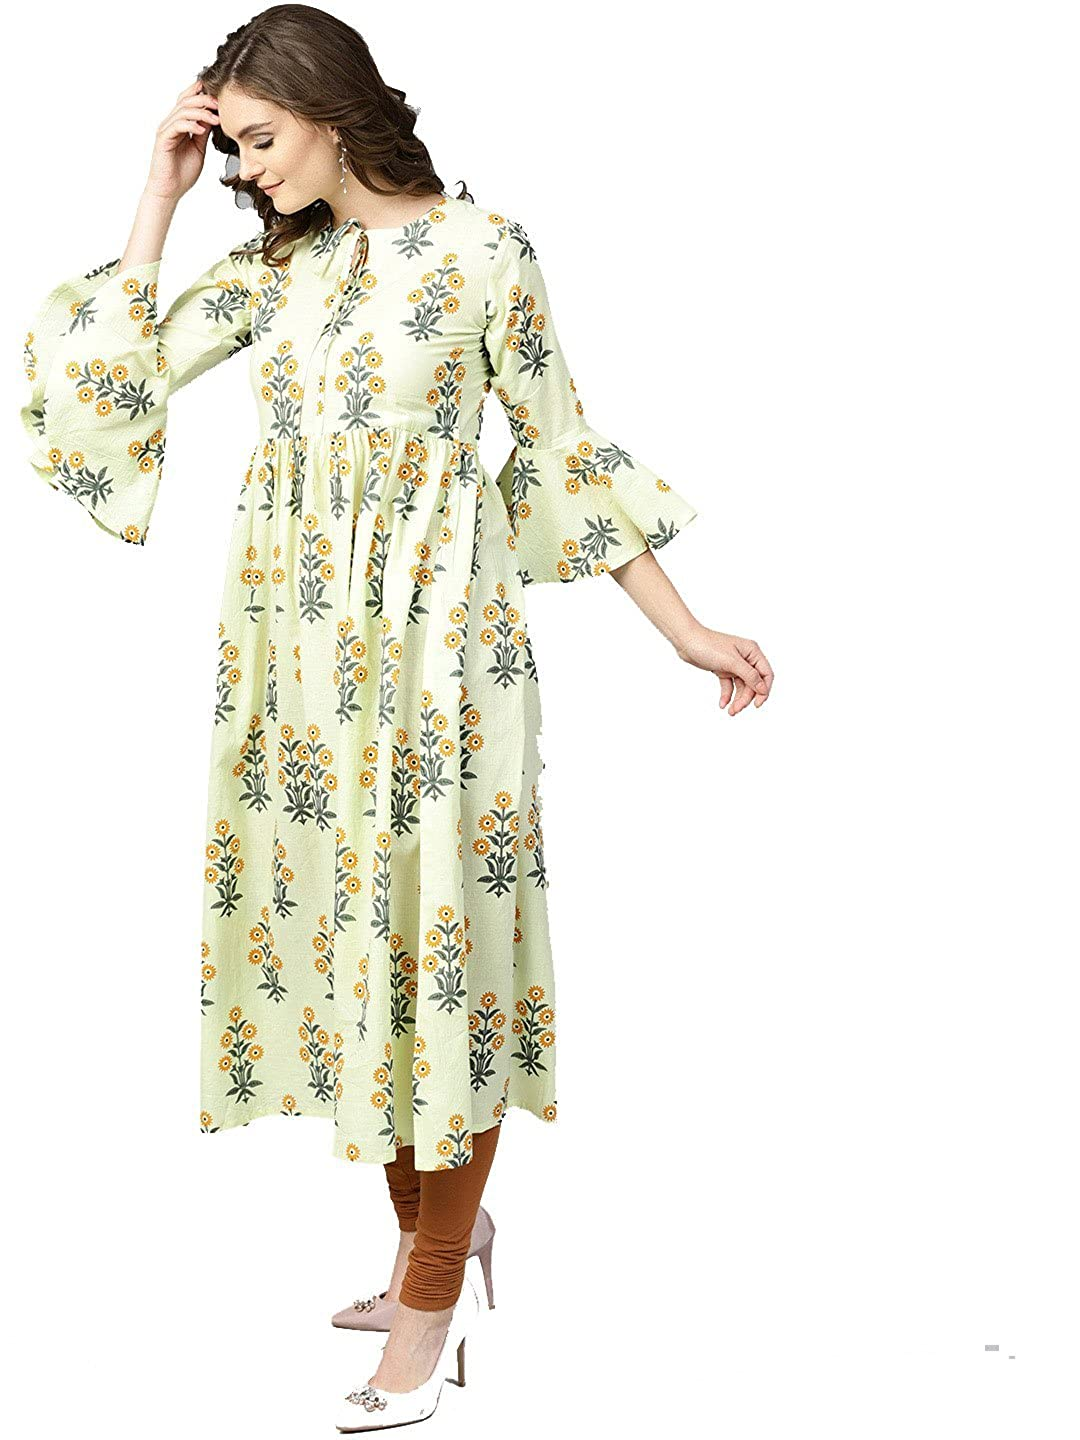 Lemon Paisley Kurta Indian Ethnic Pakistani Kurtis Dress Tunics Cotton Tops Long